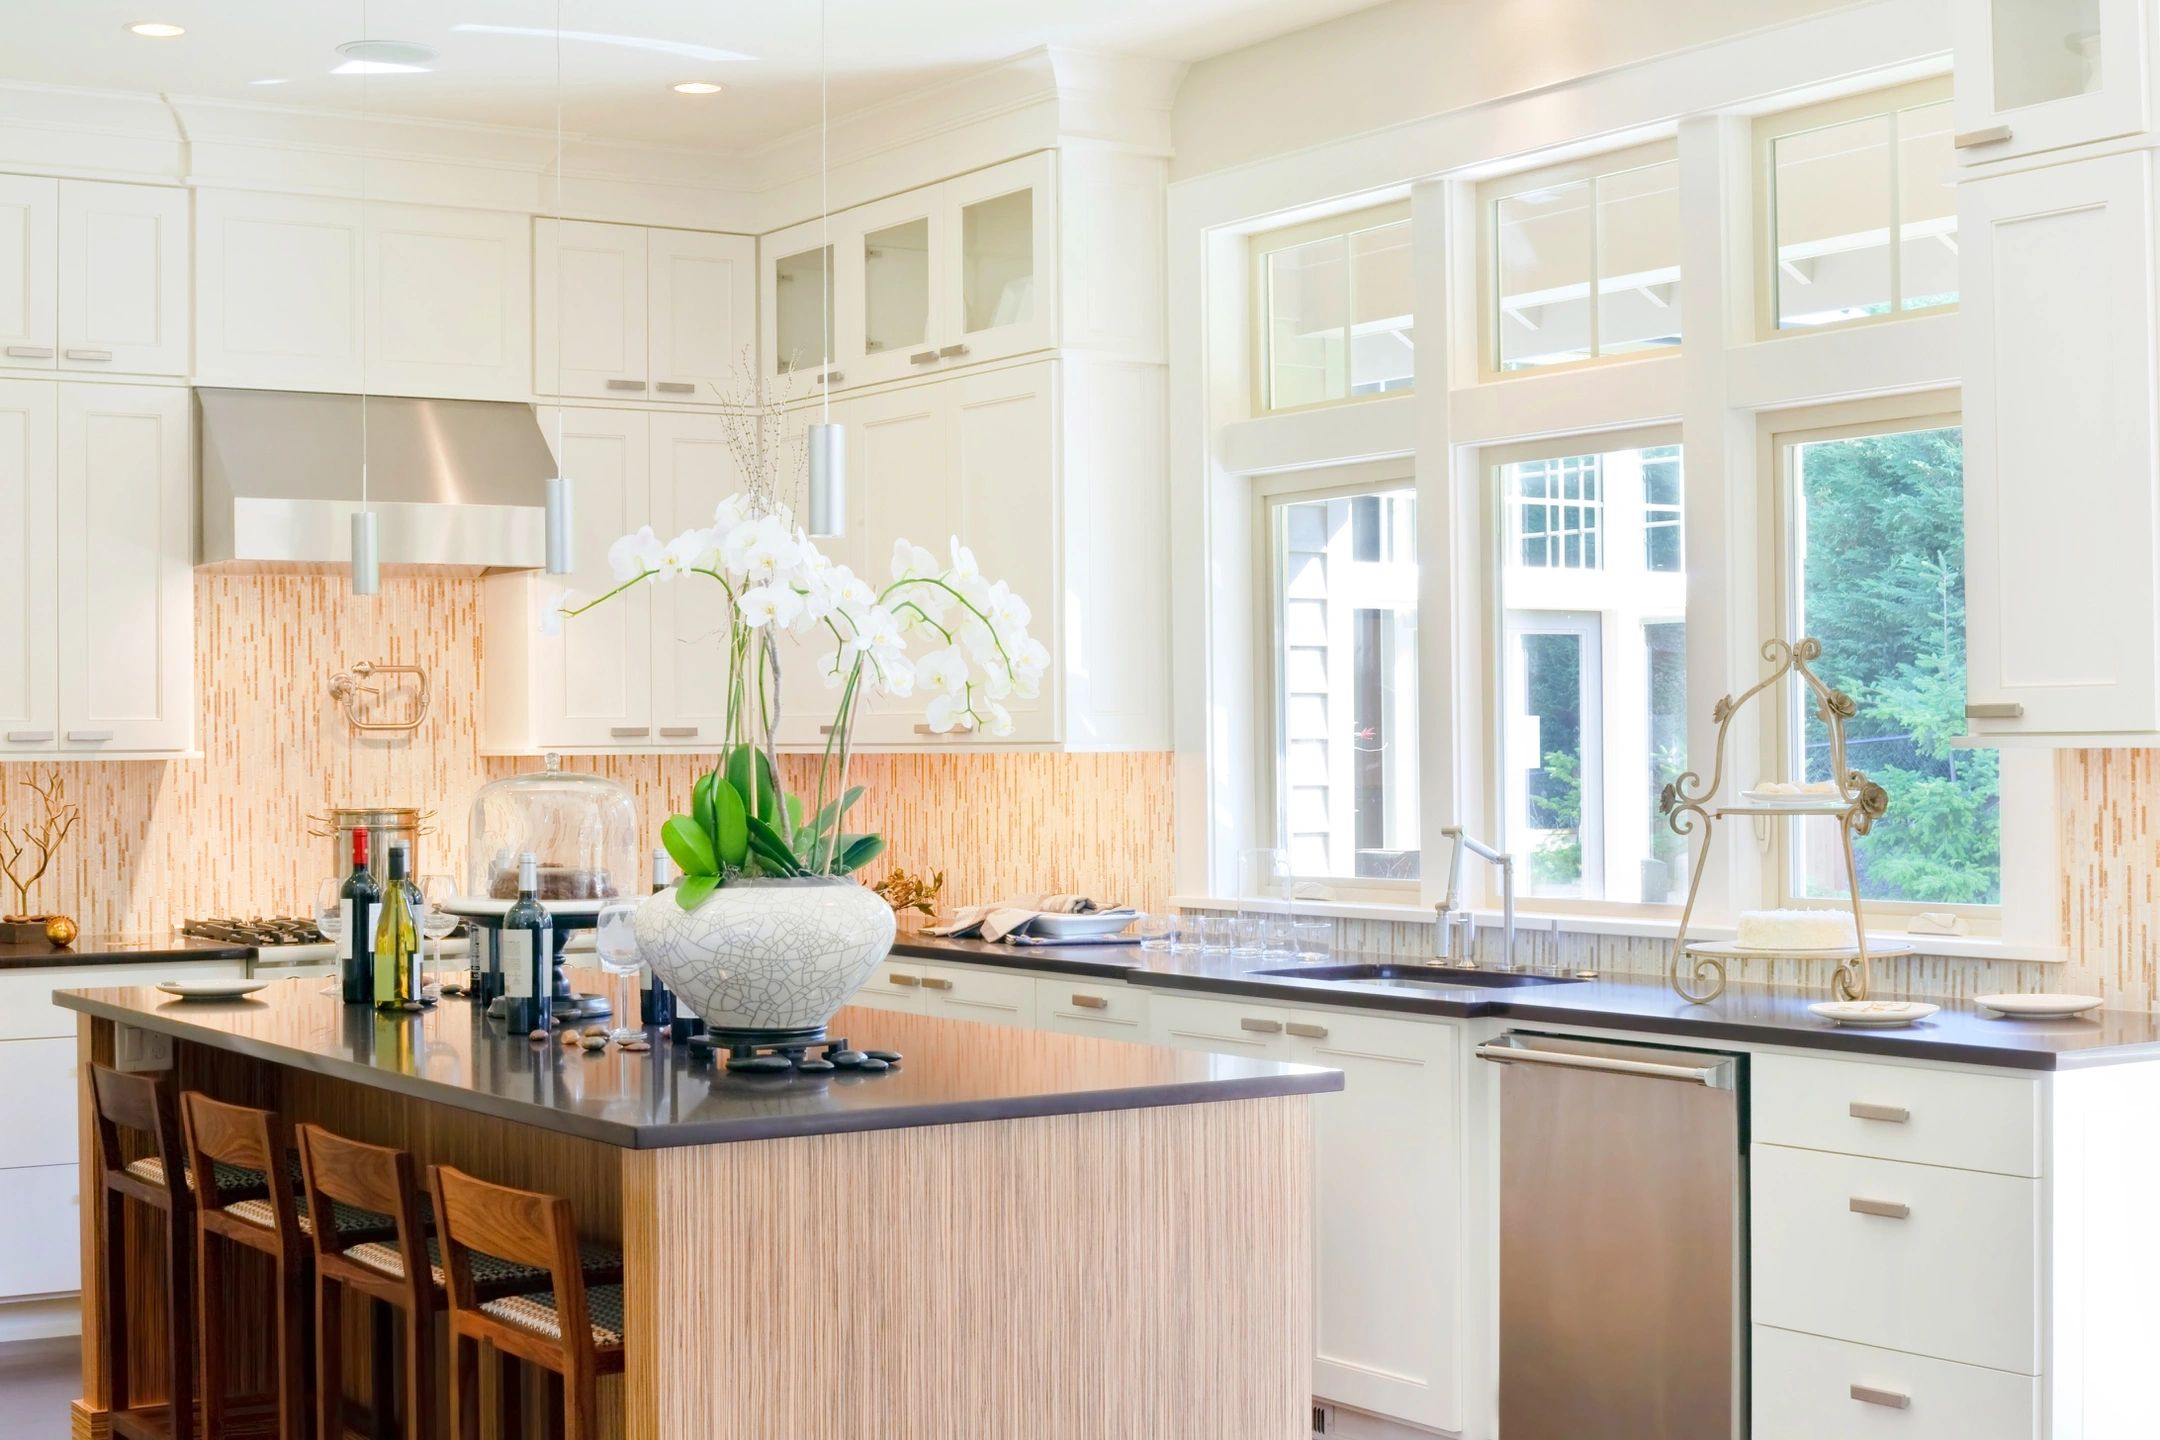 Tips For Using Natural Products To Clean Your Kitchen